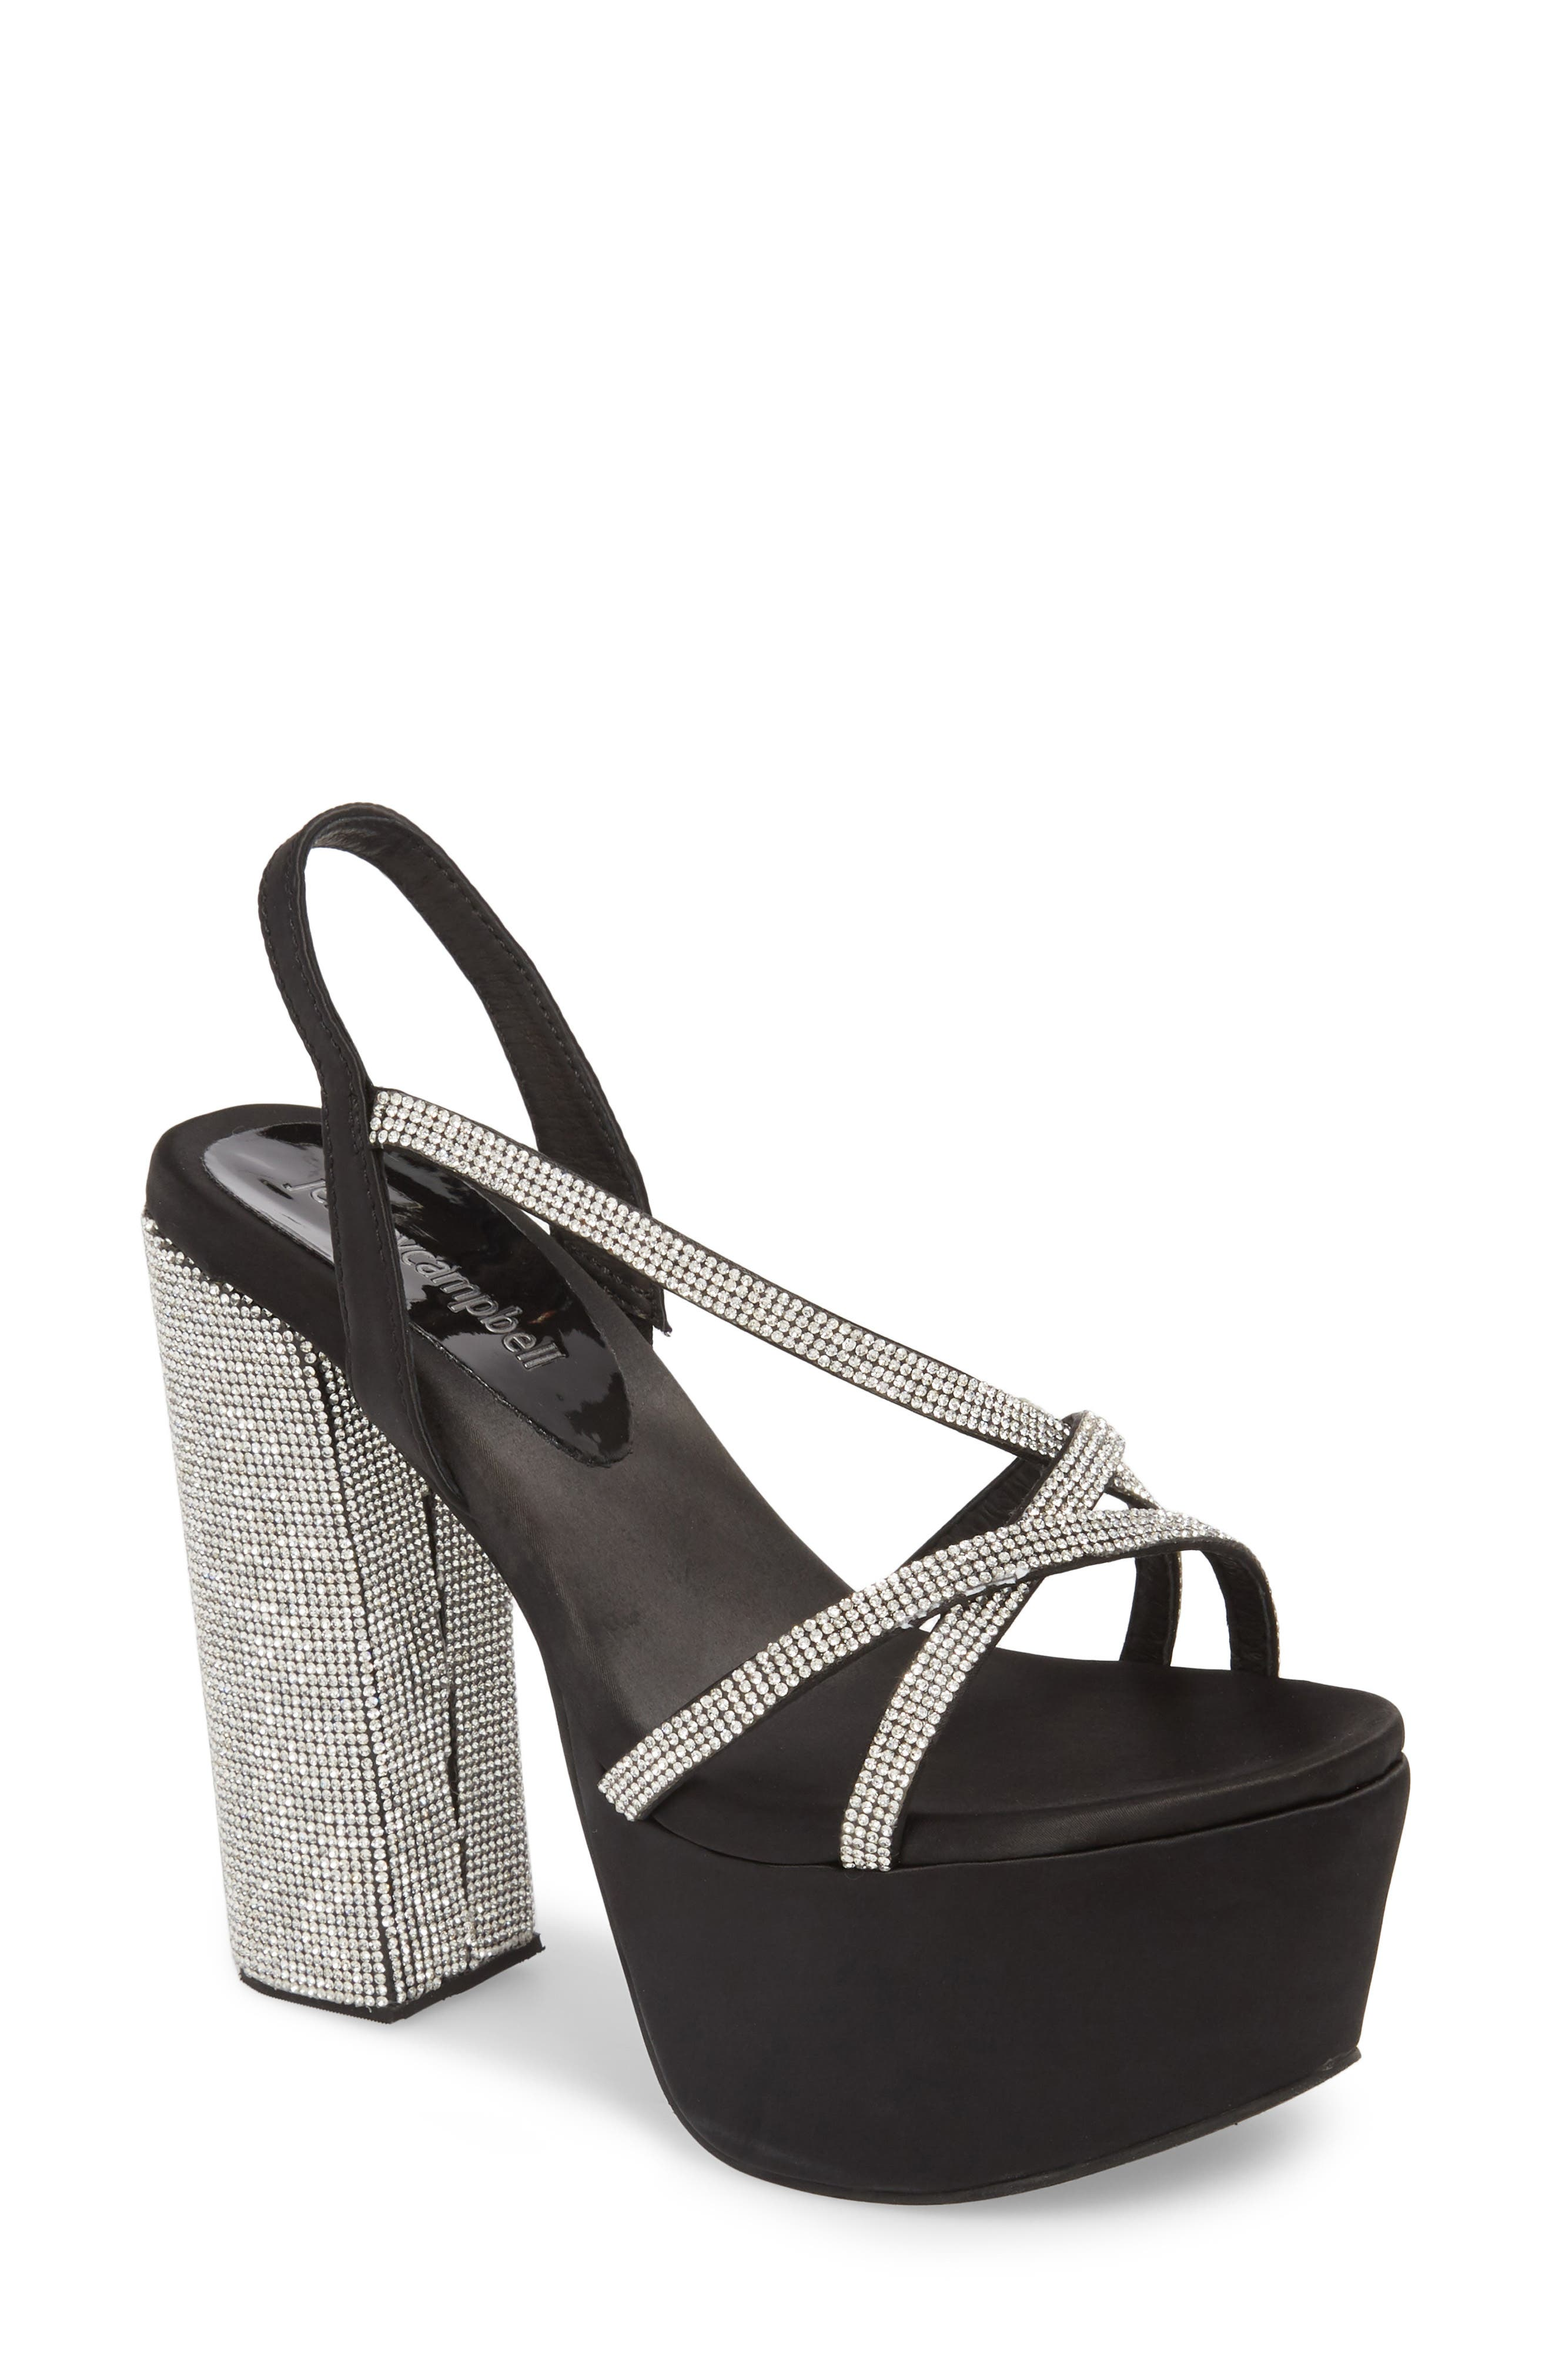 Upset Embellished Platform Sandal,                         Main,                         color, BLACK SATIN/ SILVER